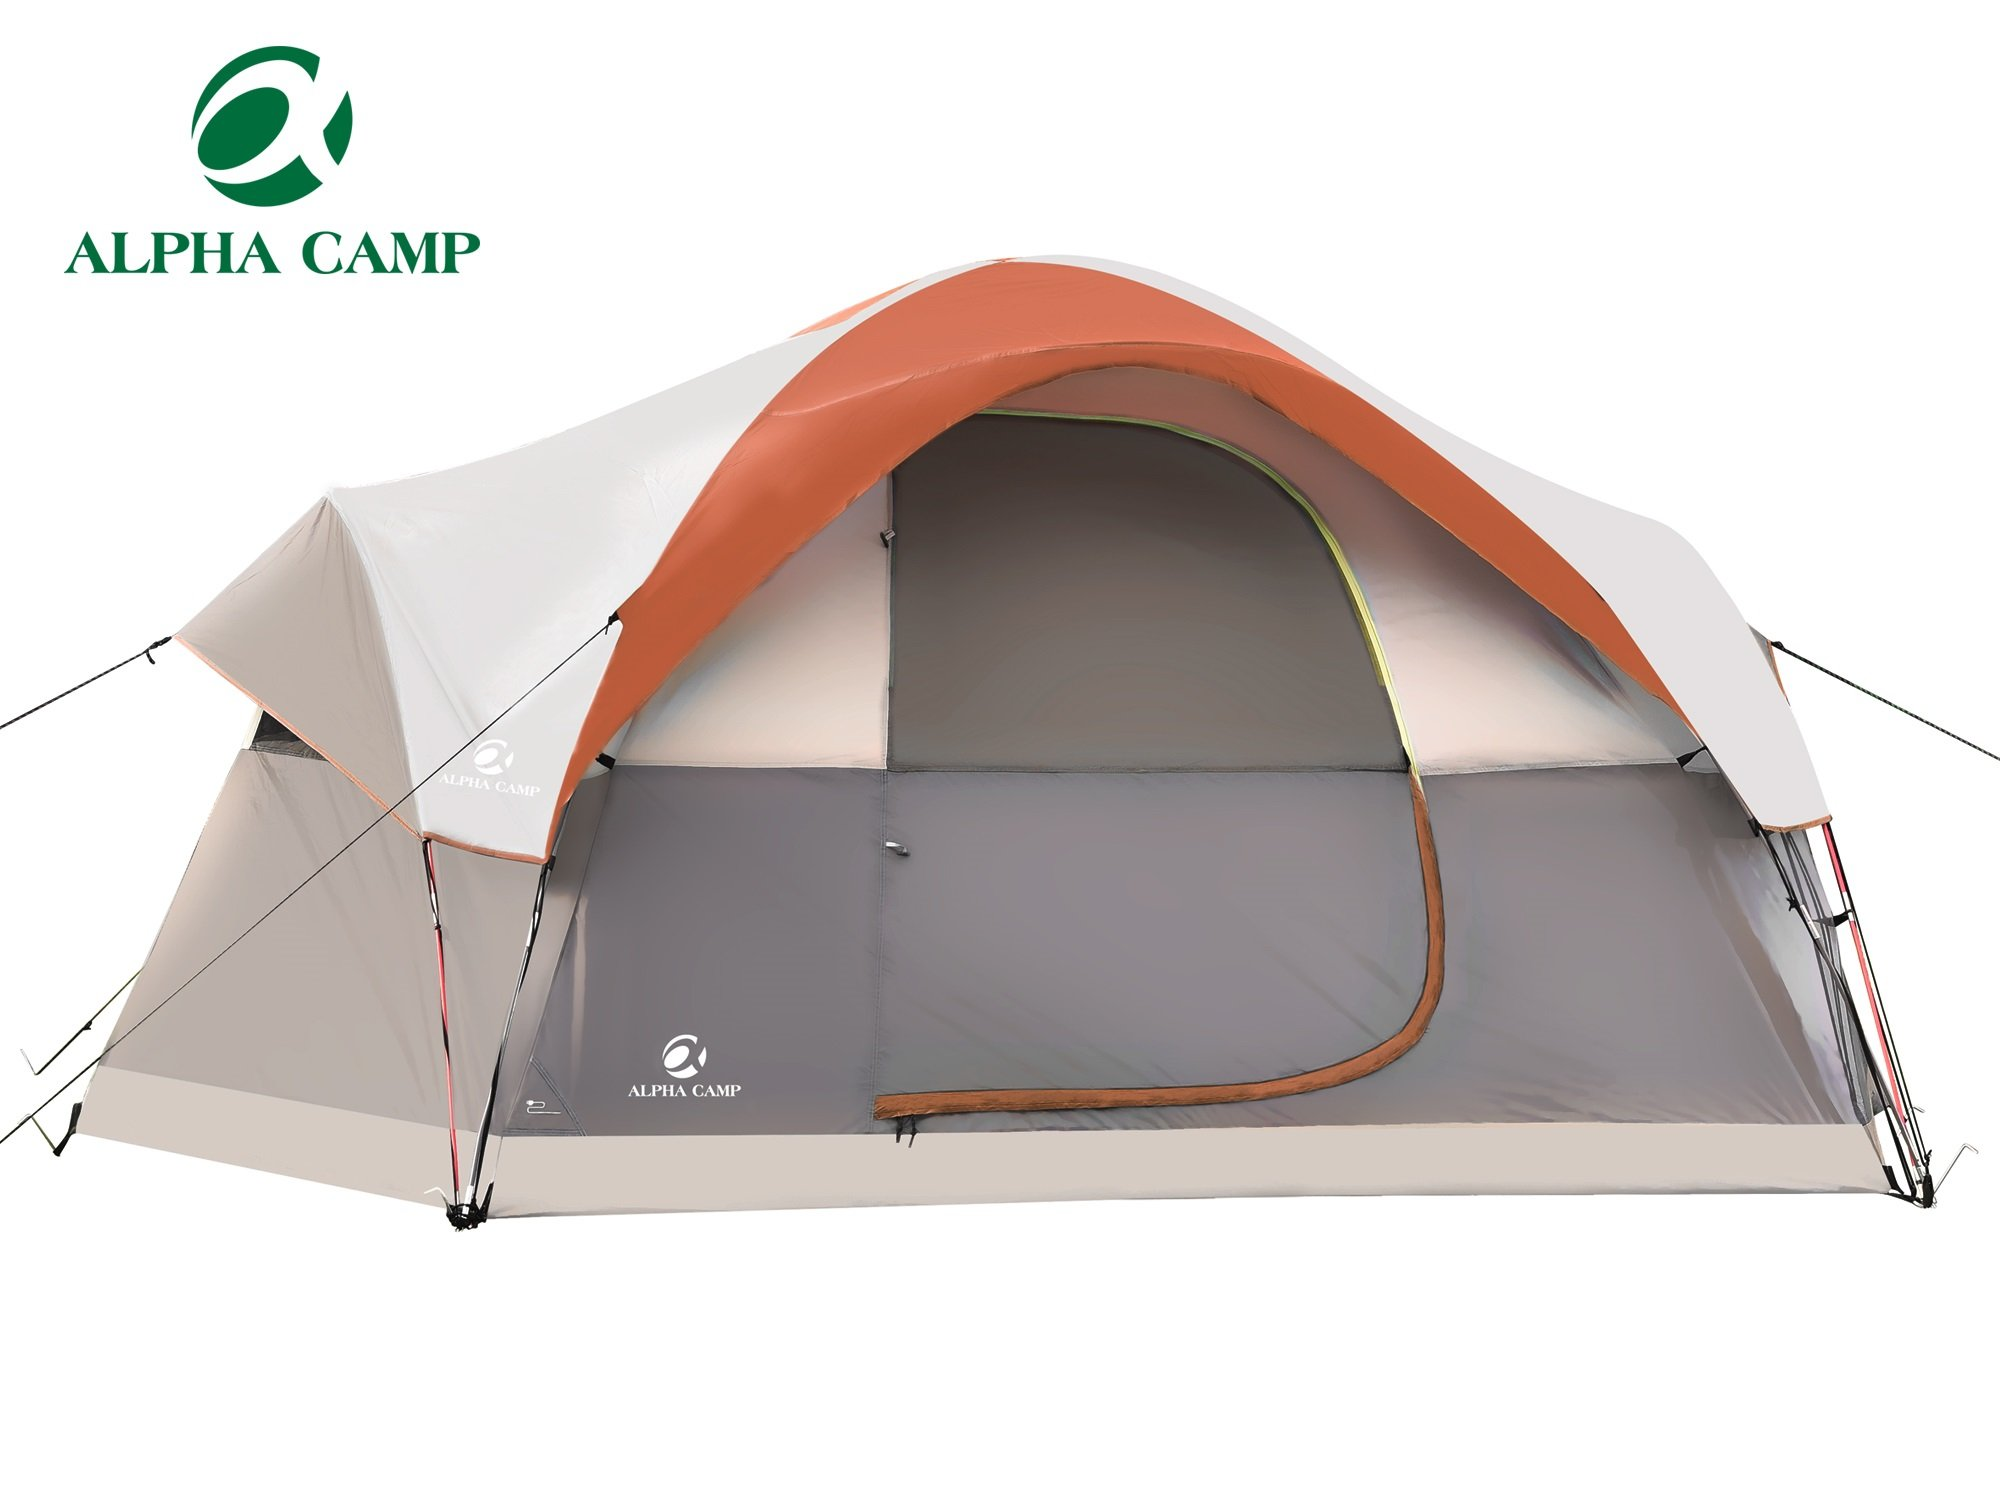 ALPHA CAMP Dome Family Camping Tent 6 Person - Orange 14' x 10'